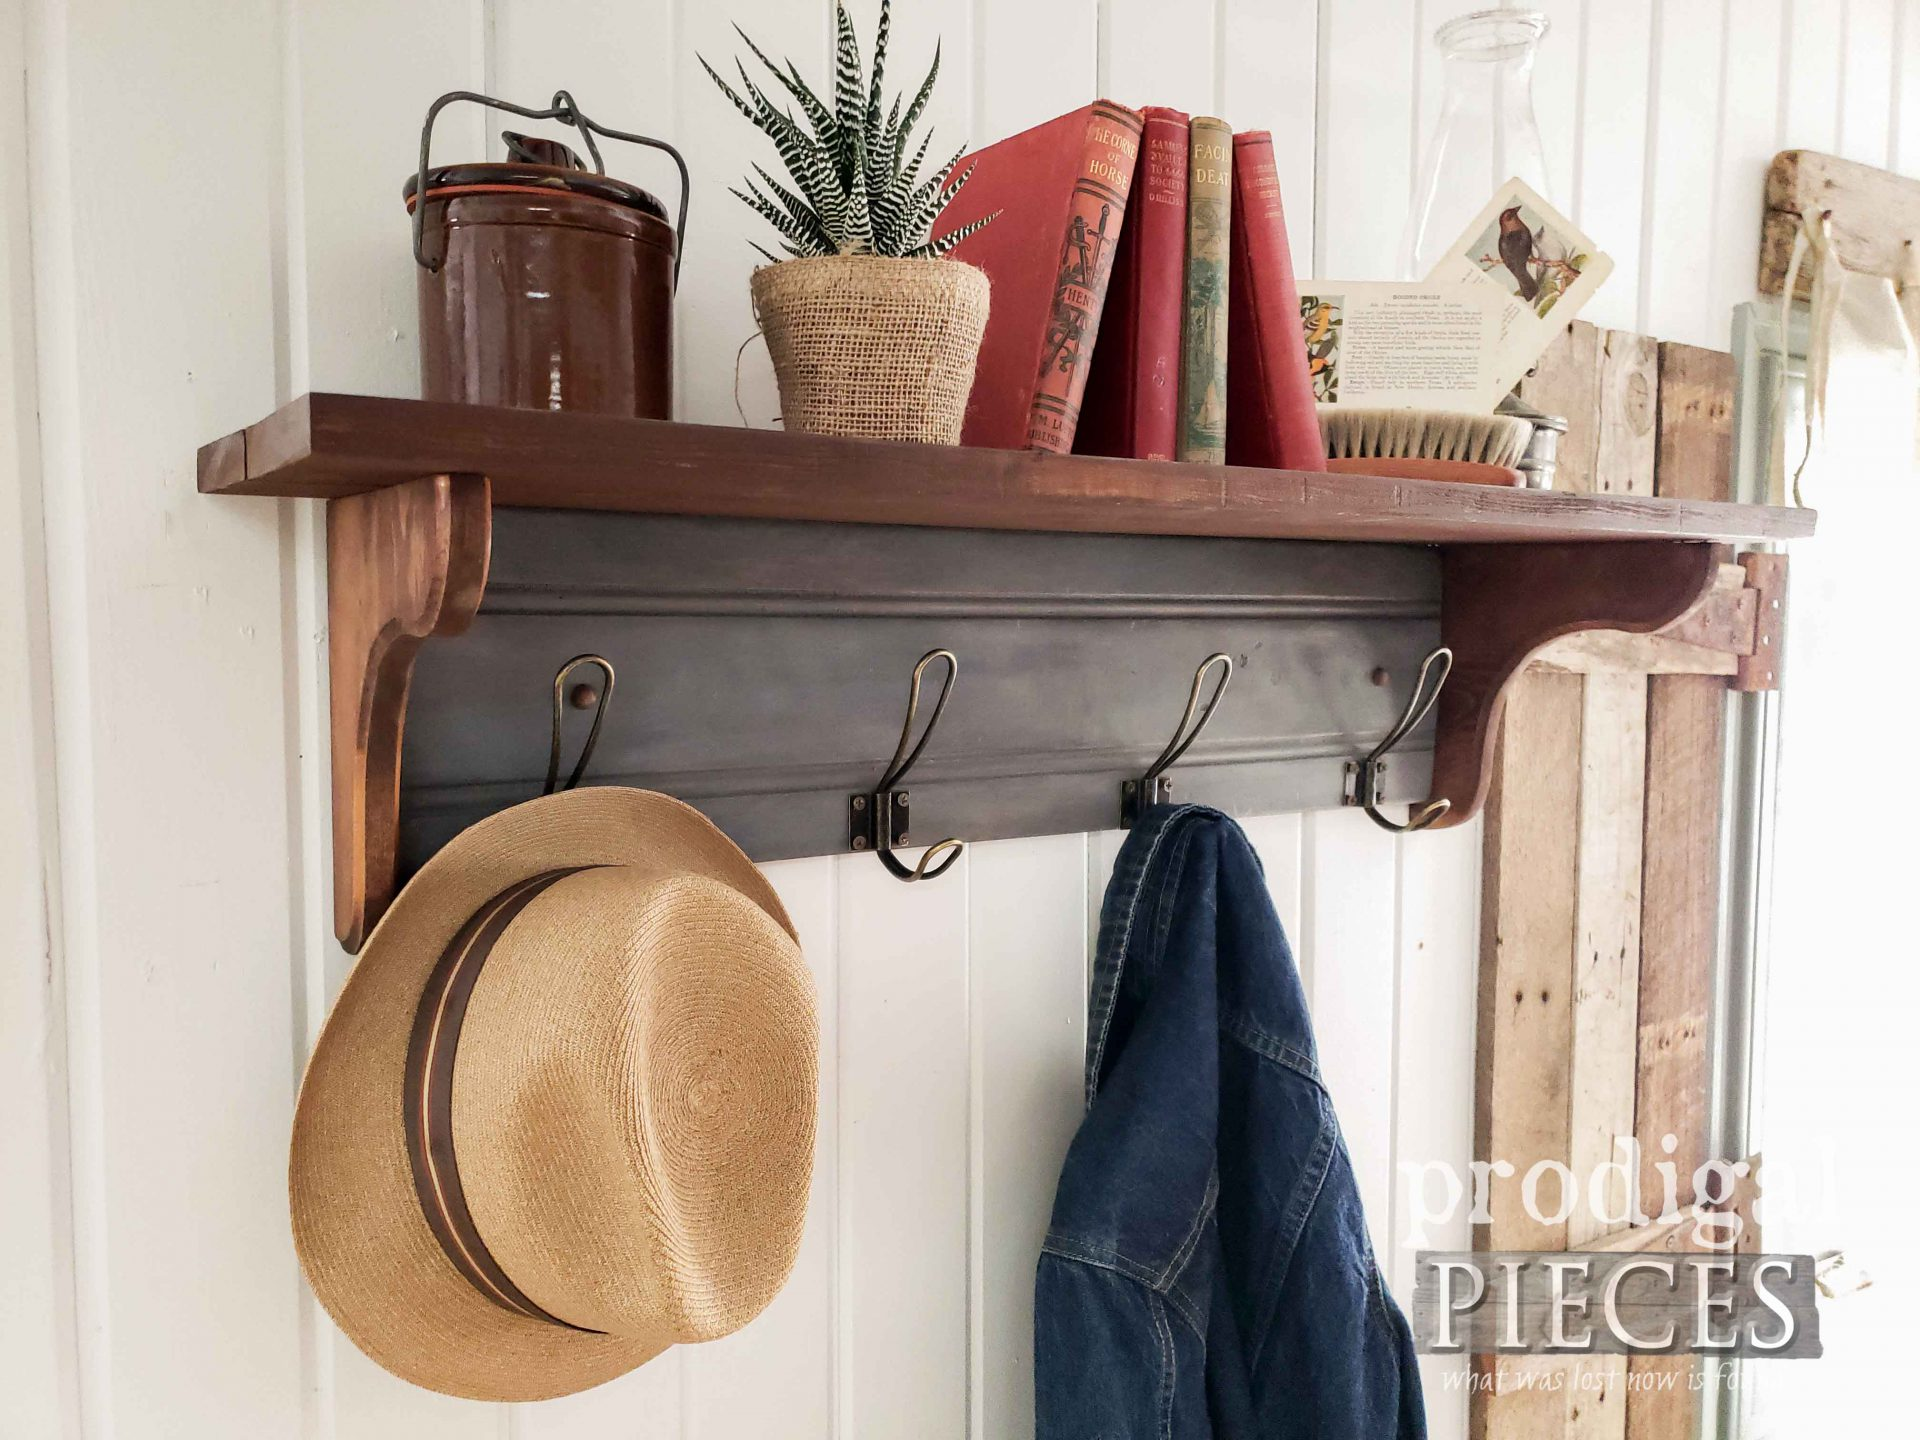 Rustic Farmhouse Coat Rack with DIY Video Tutorial by Larissa of Prodigal Pieces | prodigalpieces.com #prodigalpieces #diy #home #woodworking #homedecor